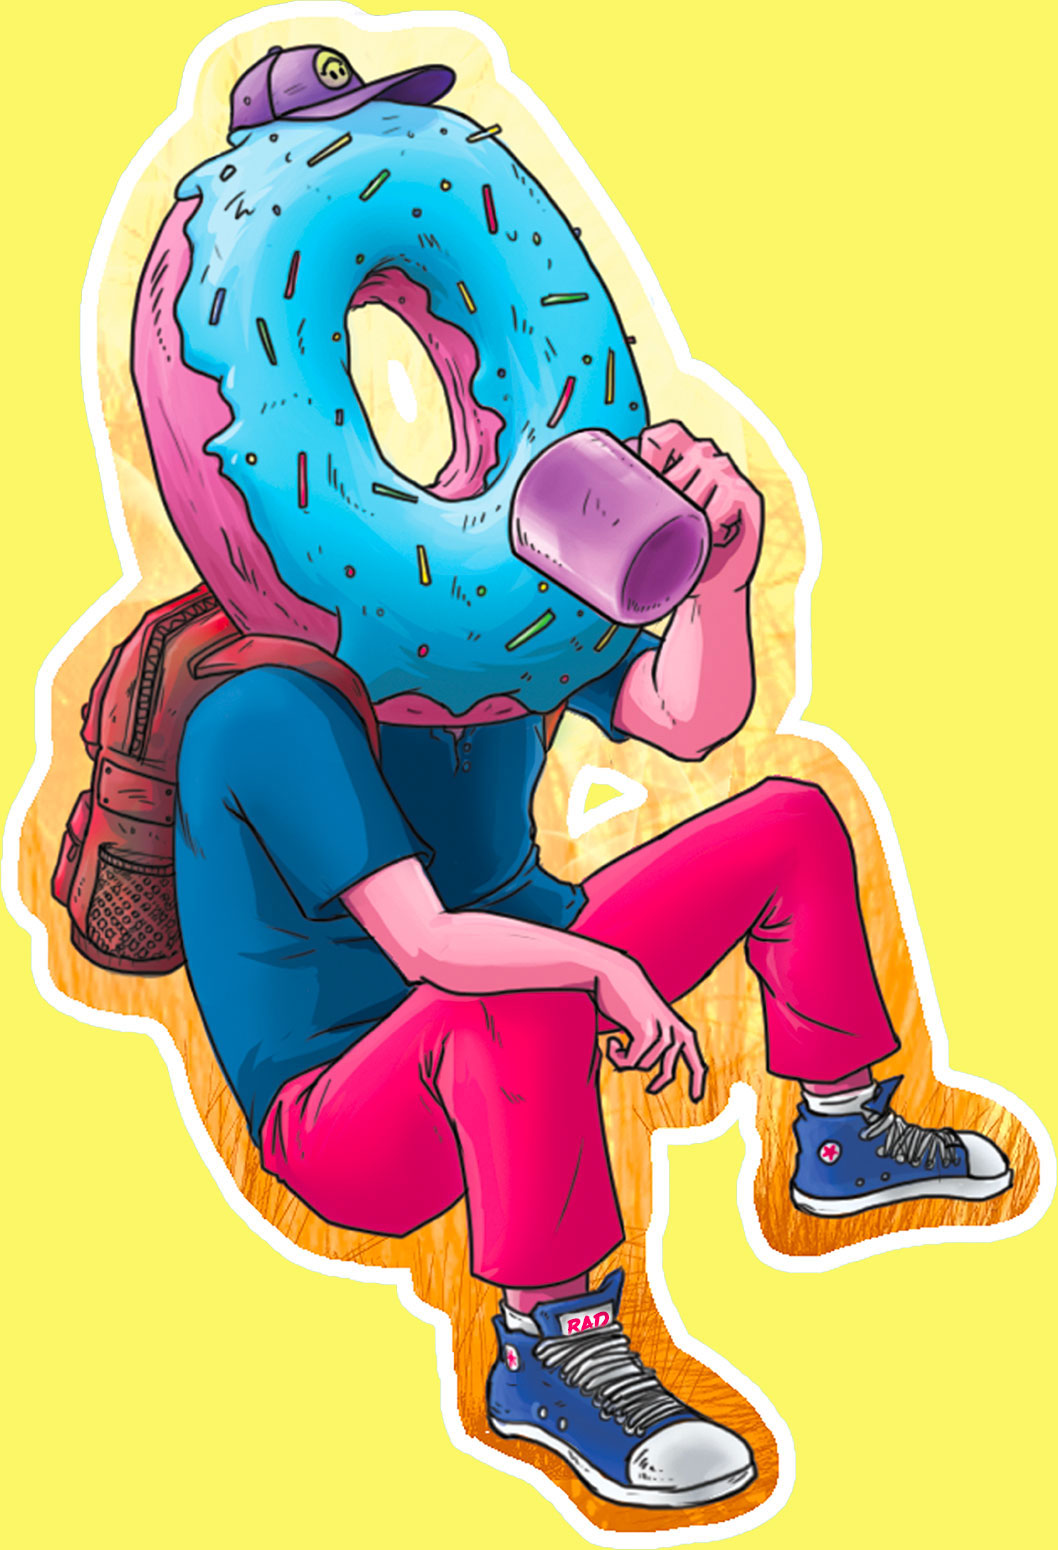 A person with a donut head drinking a cup of coffee.